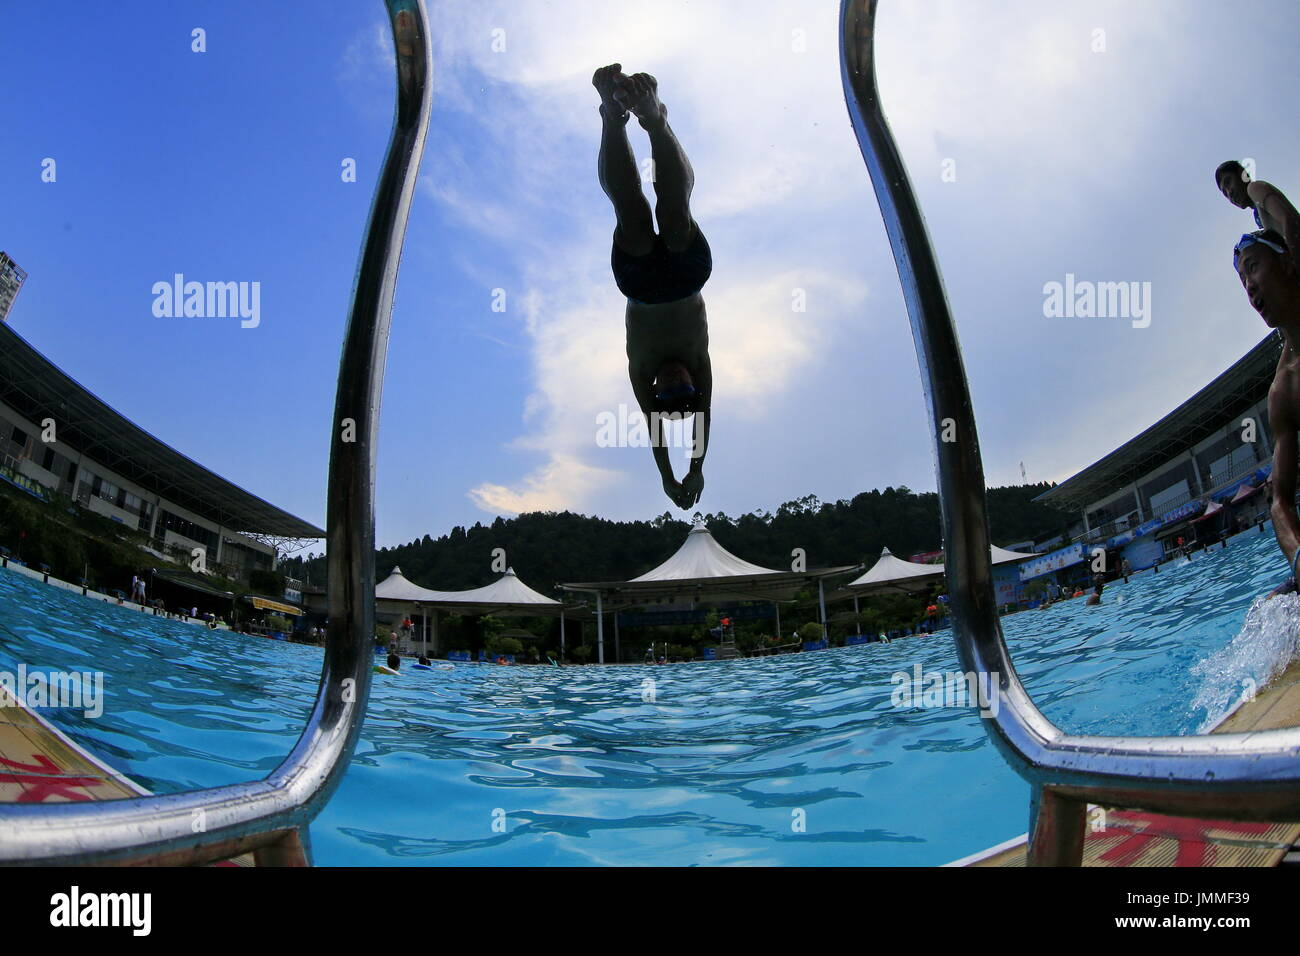 Suining, China's Sichuan Province. 28th July, 2017. People goes swimming at Chuanshan Natatorium to cool off amid hot weather in Suining, southwest China's Sichuan Province, July 28, 2017. Credit: Zhong Min/Xinhua/Alamy Live News - Stock Image